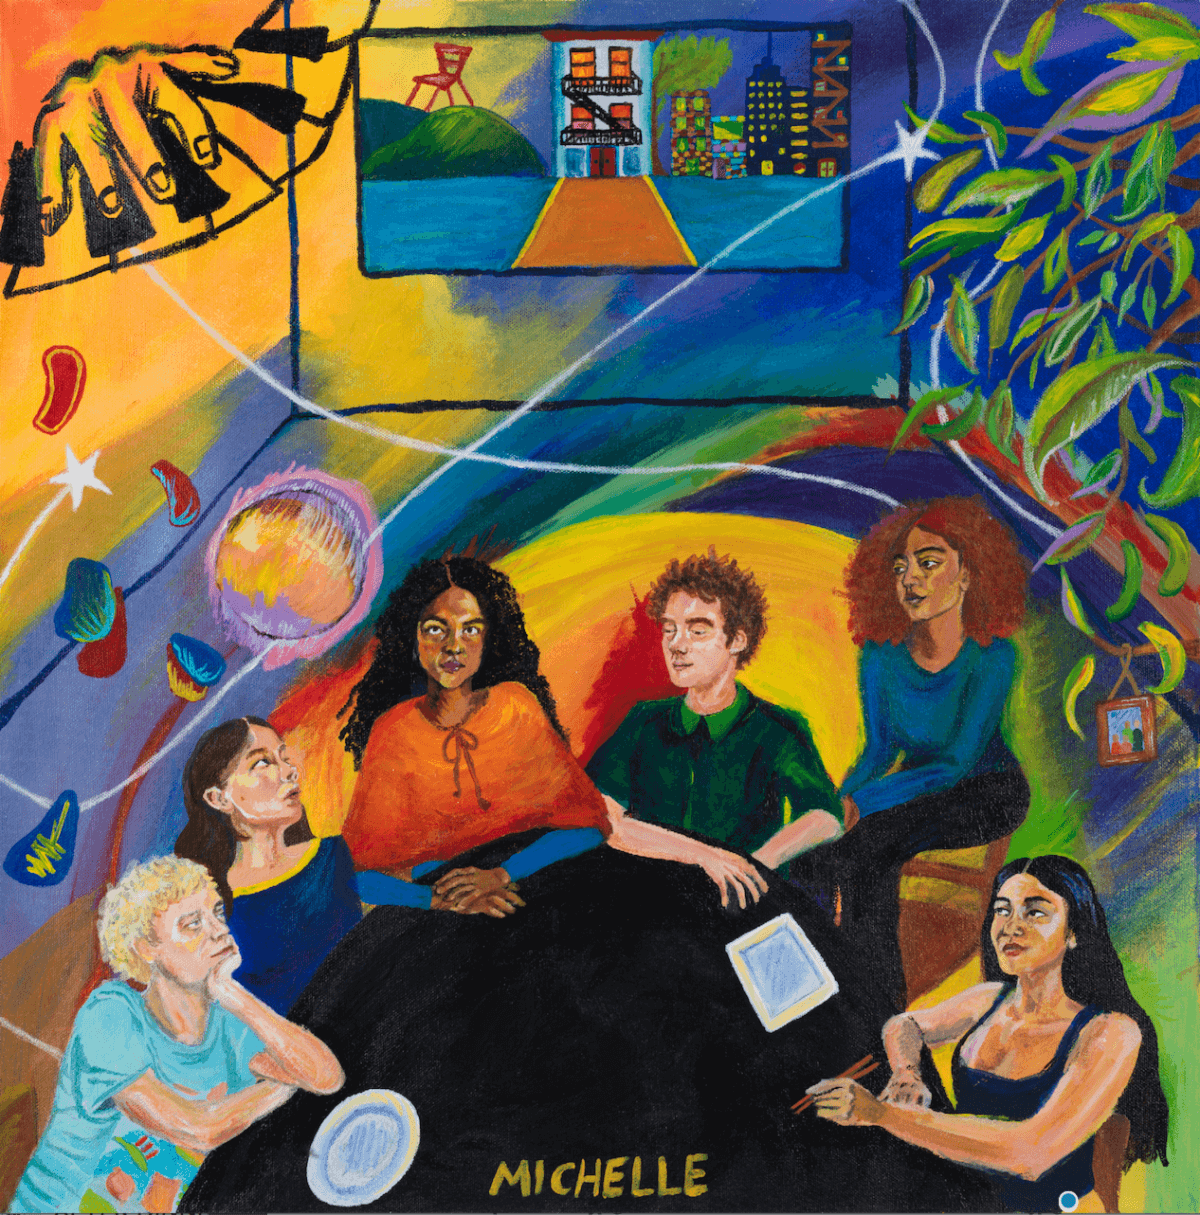 Michelle, have announced their new album AFTER DINNER WE TALK DREAMS, will drop on January 28th, 2022 via Canvasback Music and Transgressive